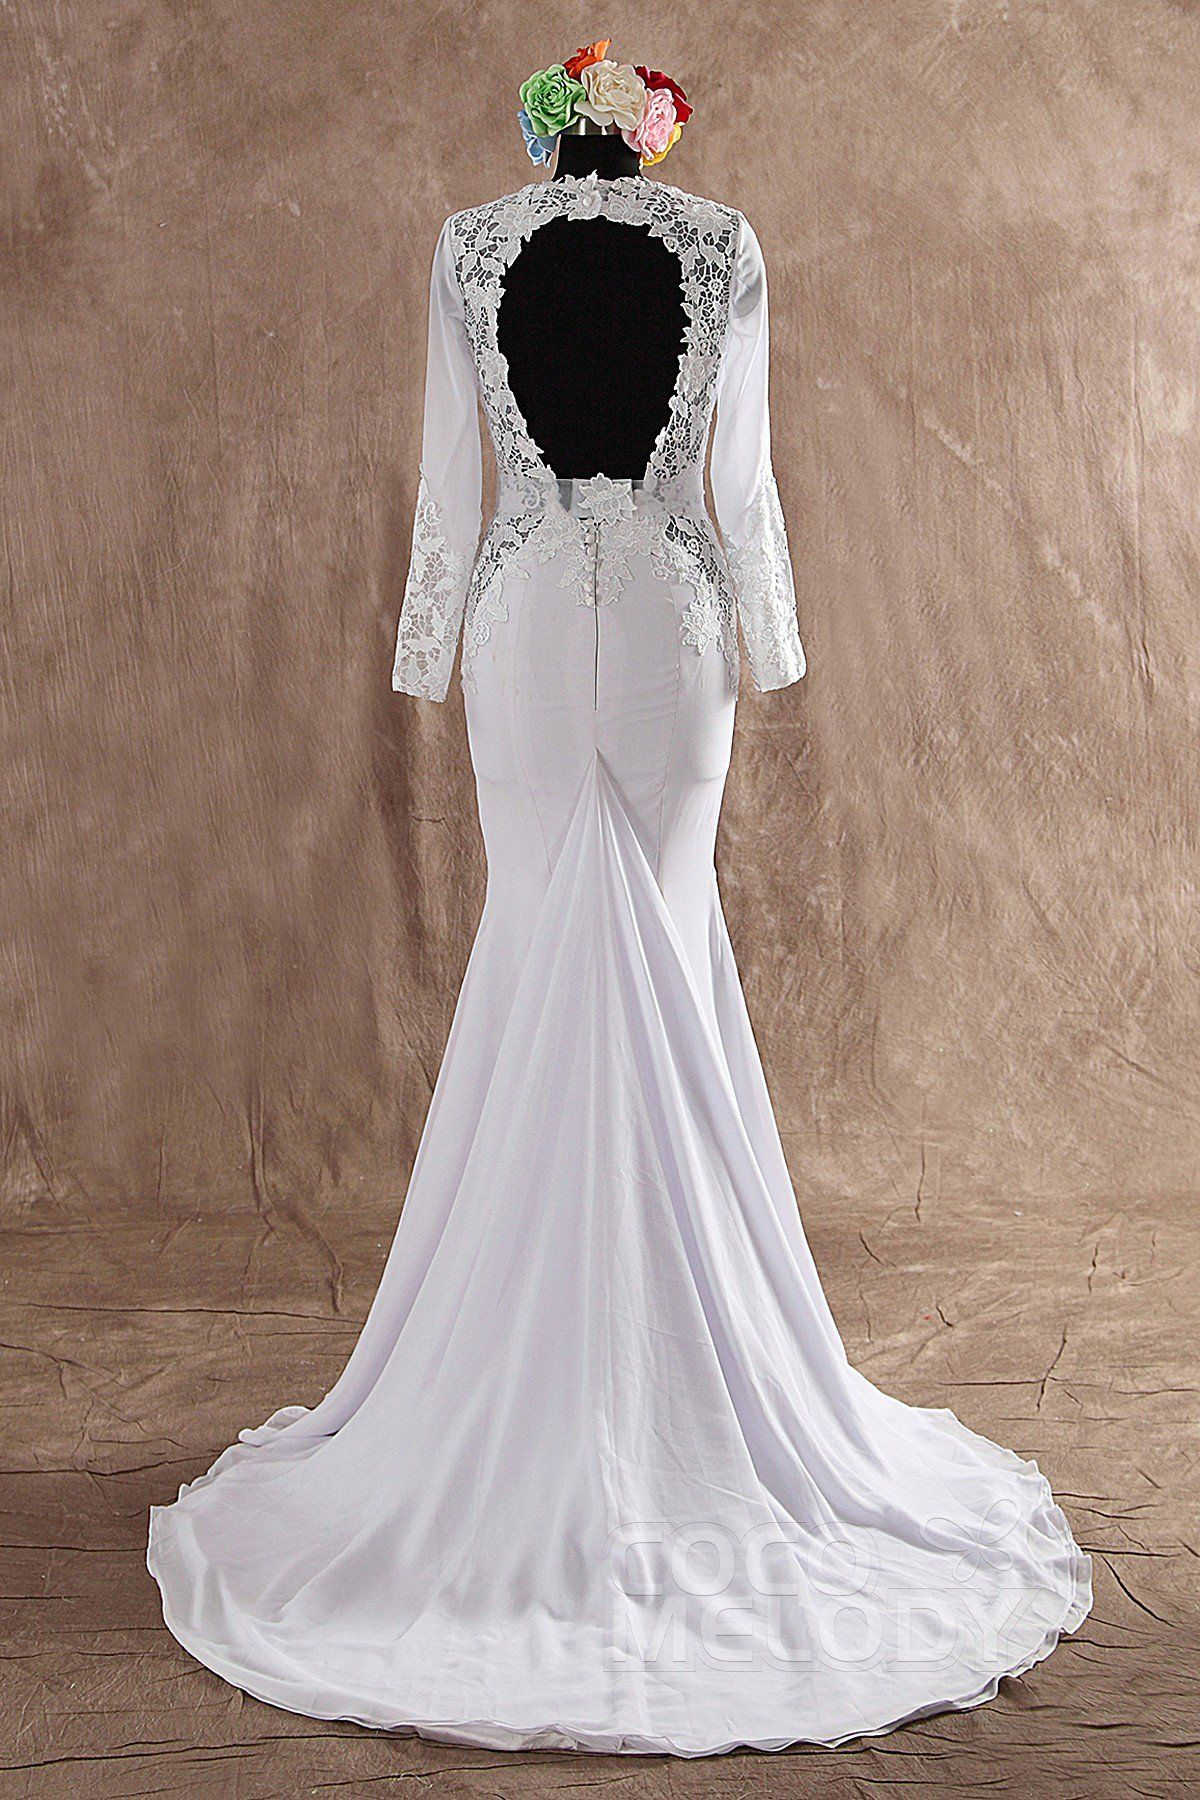 Fashion Trumpet-Mermaid V-neck Open Back In Stock Court Train Chiffon Long Sleeve Wedding Dress with Appliques LWAT14002IS #weddingdresses #cocomelody